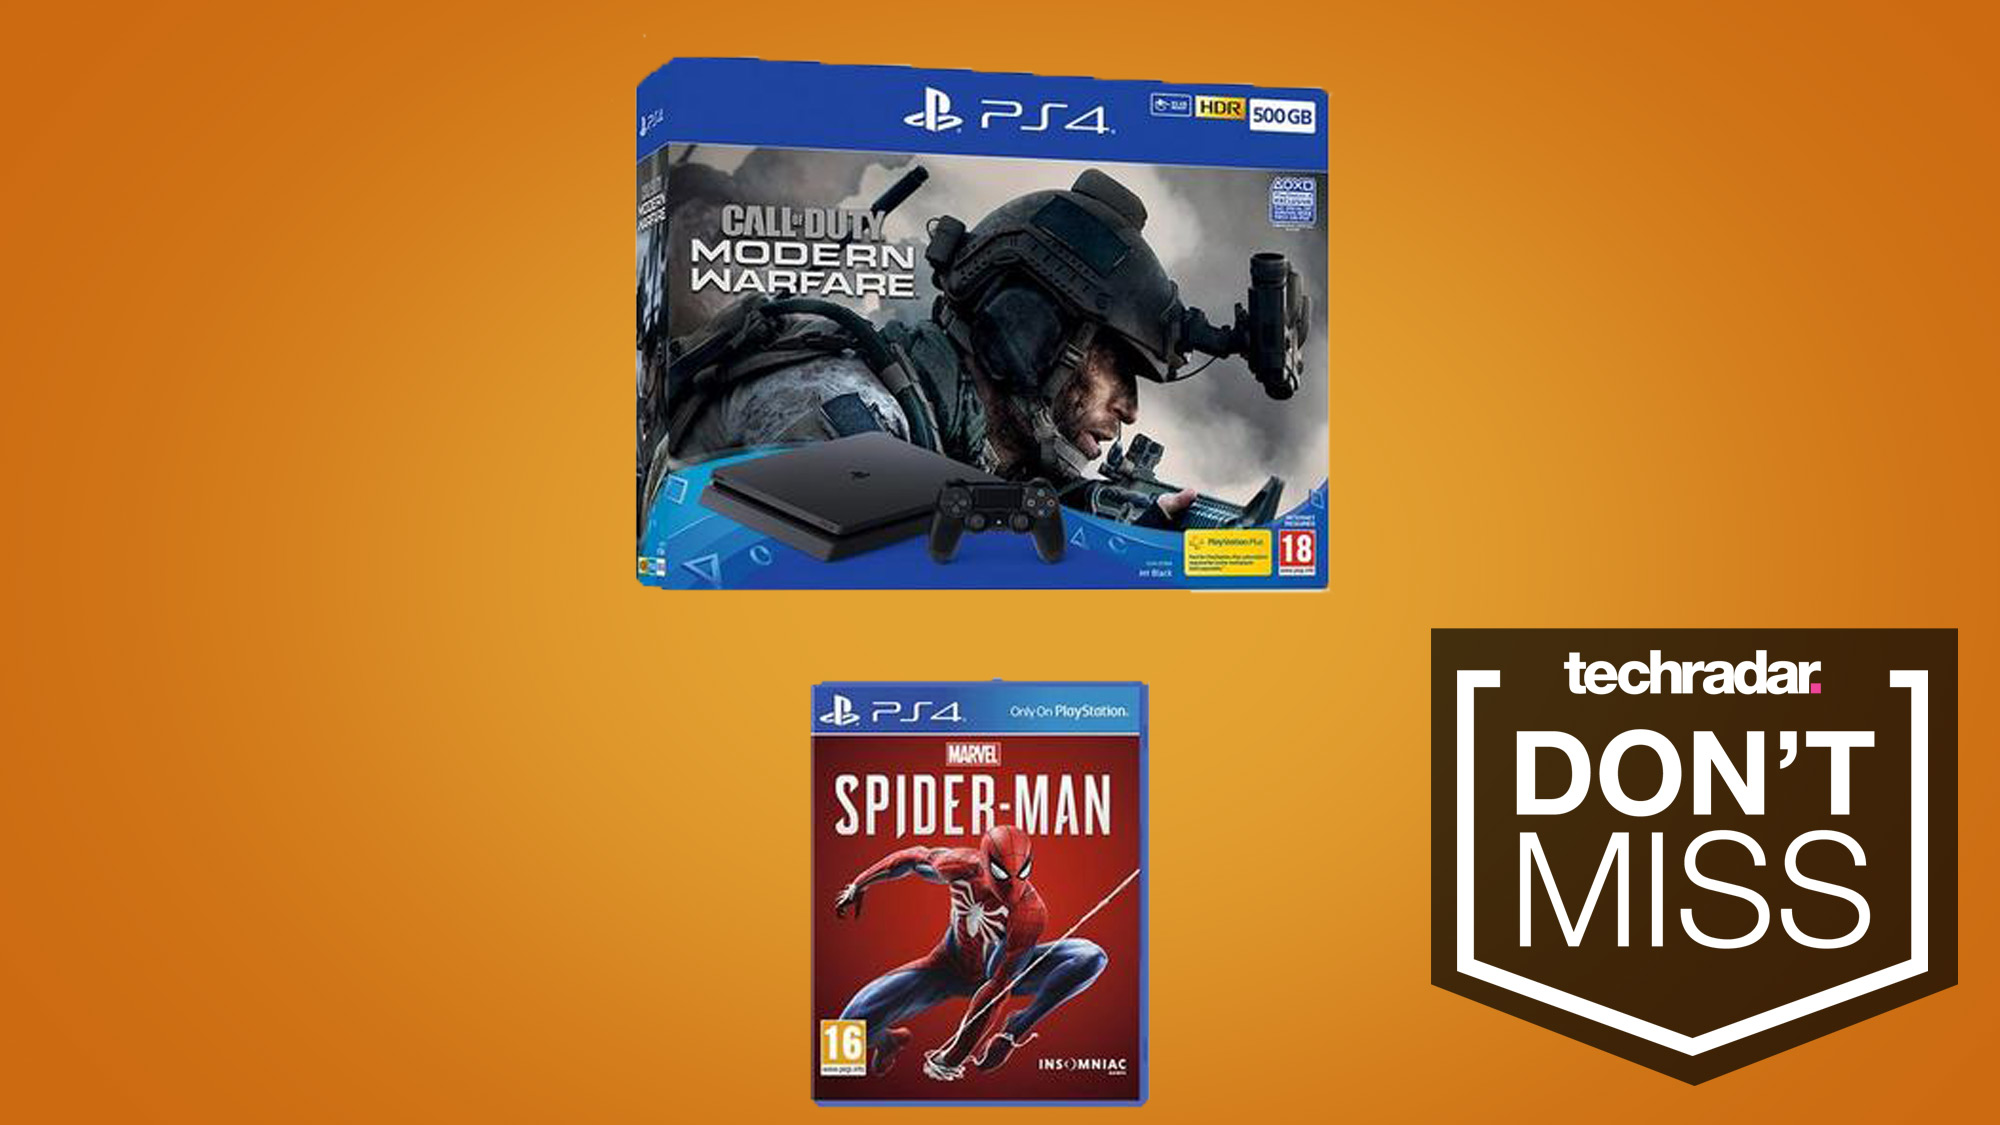 Grab a PS4, the new Call of Duty and Spider-Man for just £200